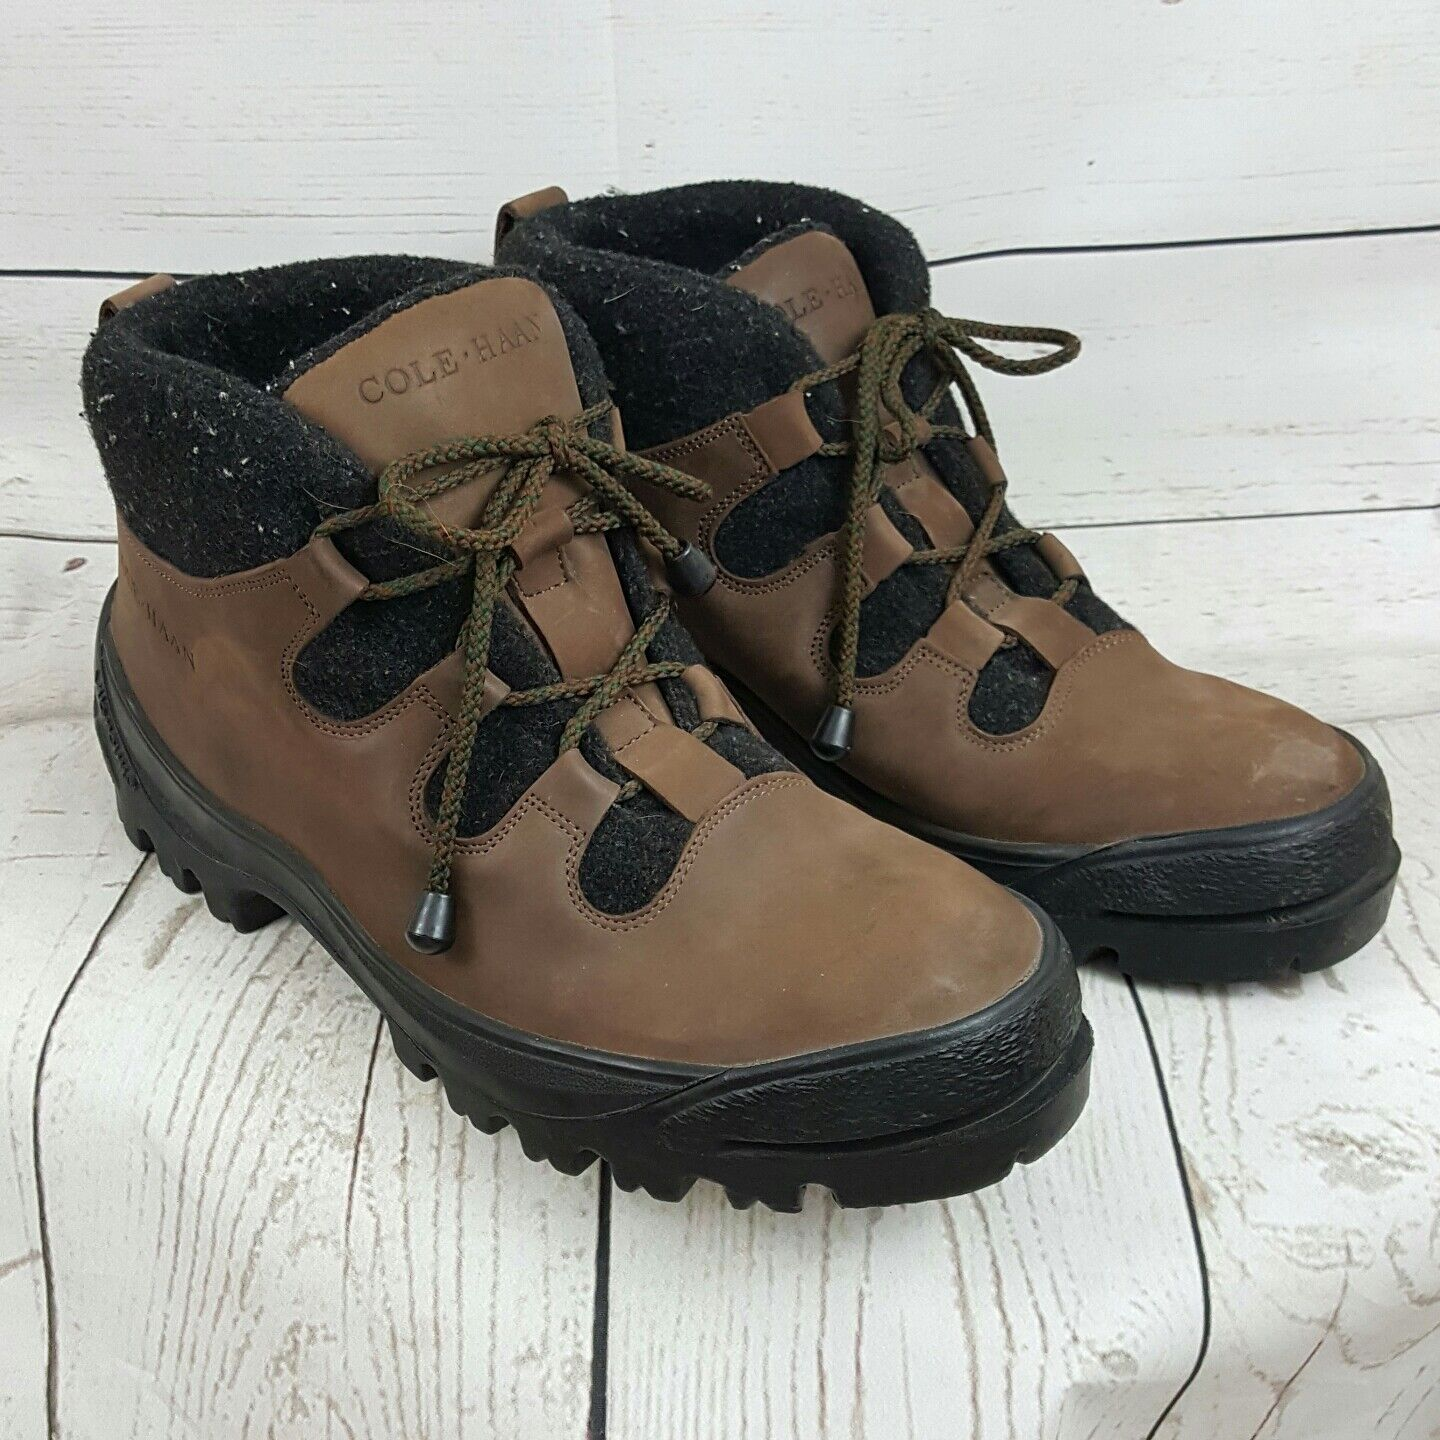 Cole Haan Mens Lace Up hiking Boots 10 M Vikram sole